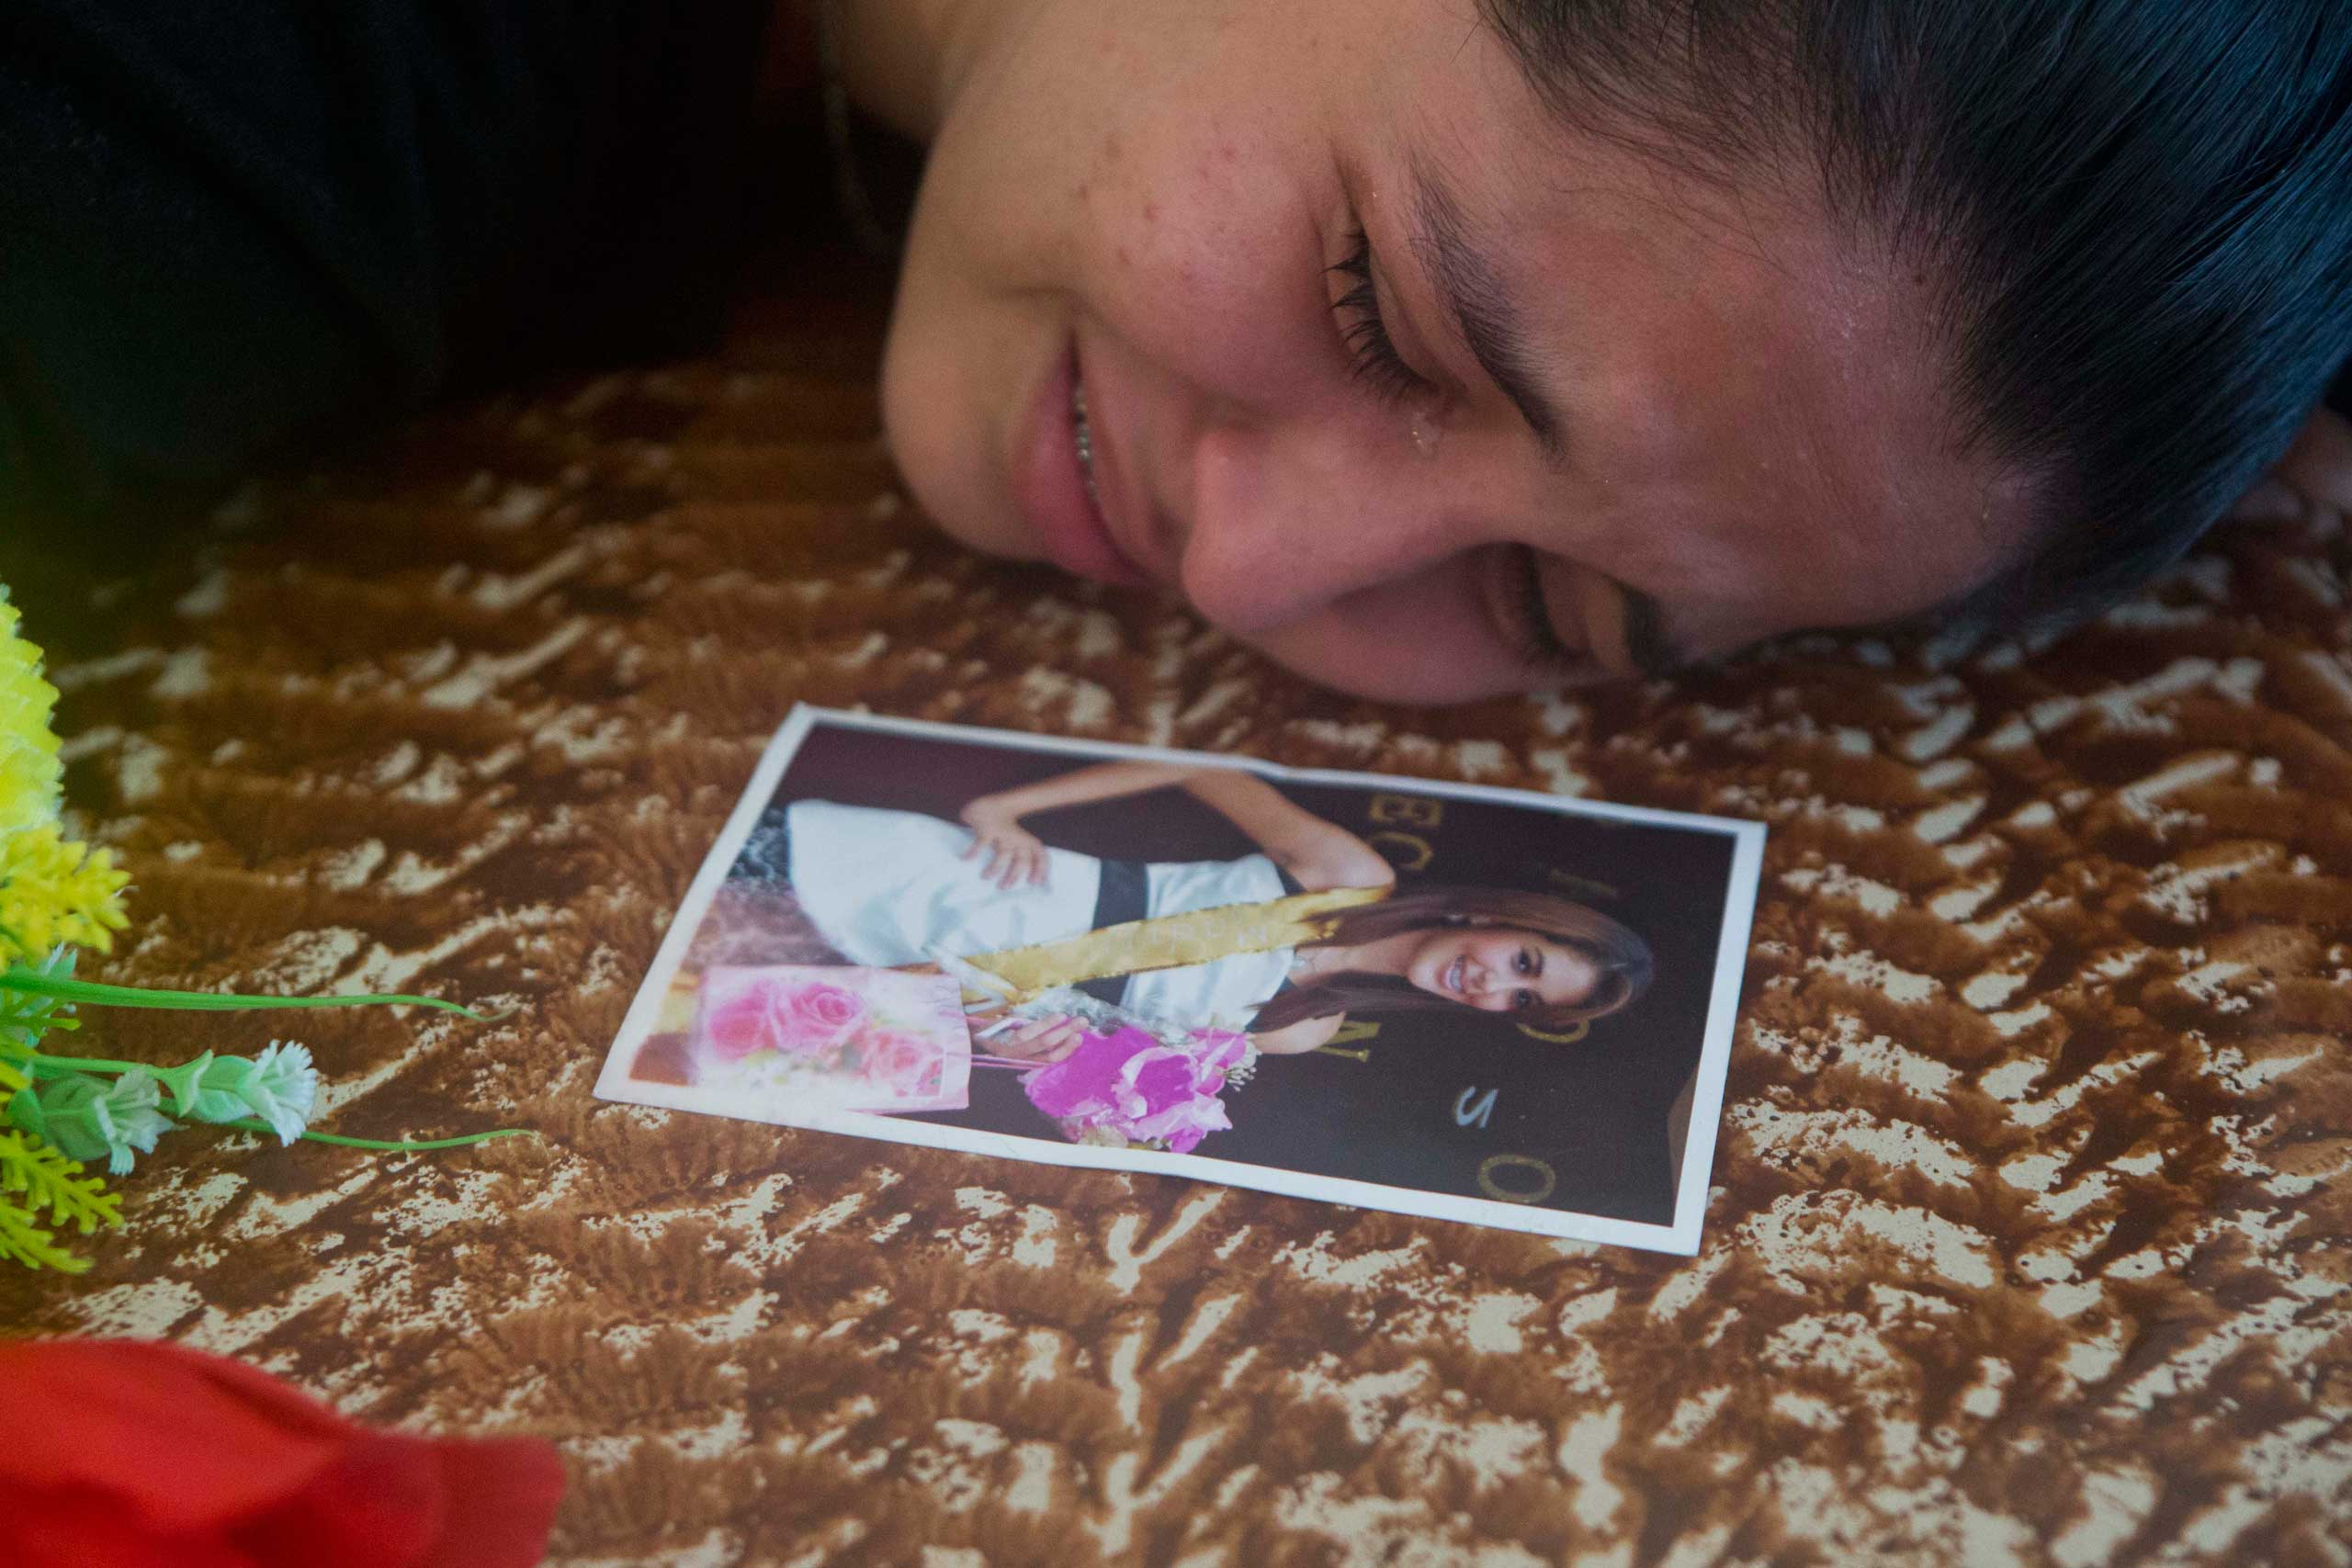 Nov. 20, 2014. Keyling Enamorado, a friend of slain beauty queen Maria Jose Alvarado, cries on Maria's coffin in Santa Barbara, Honduras. Grieving family members laid to rest the Honduran beauty queen and her sister, Sofia, after the women were shot to death in what police say was a jealous rage by the sister's boyfriend.